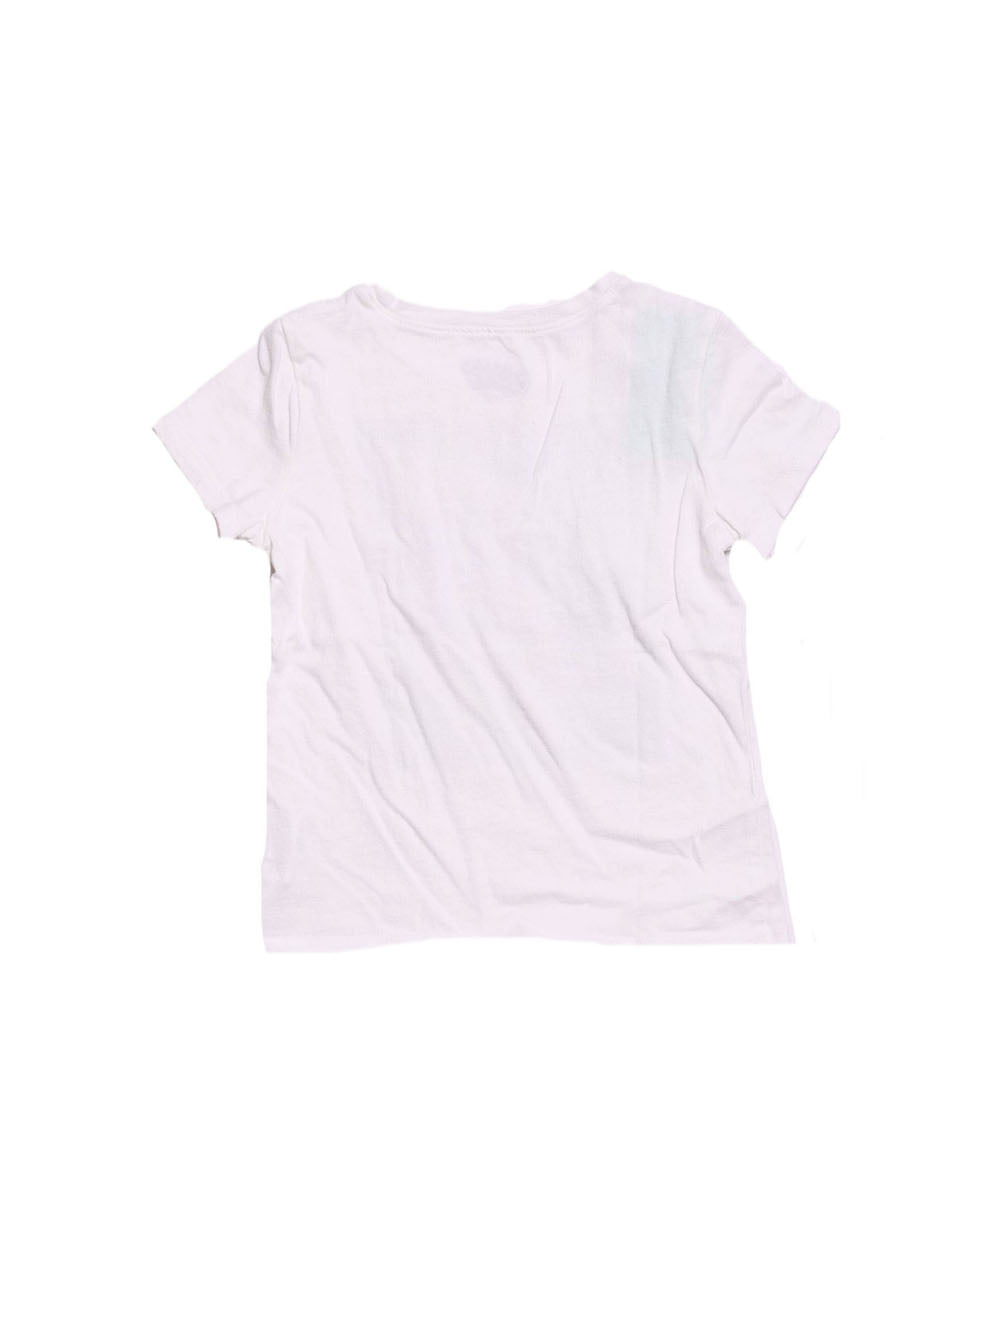 Back photo of Preloved Old Navy White Girl's t-shirt - size 4-5 yrs